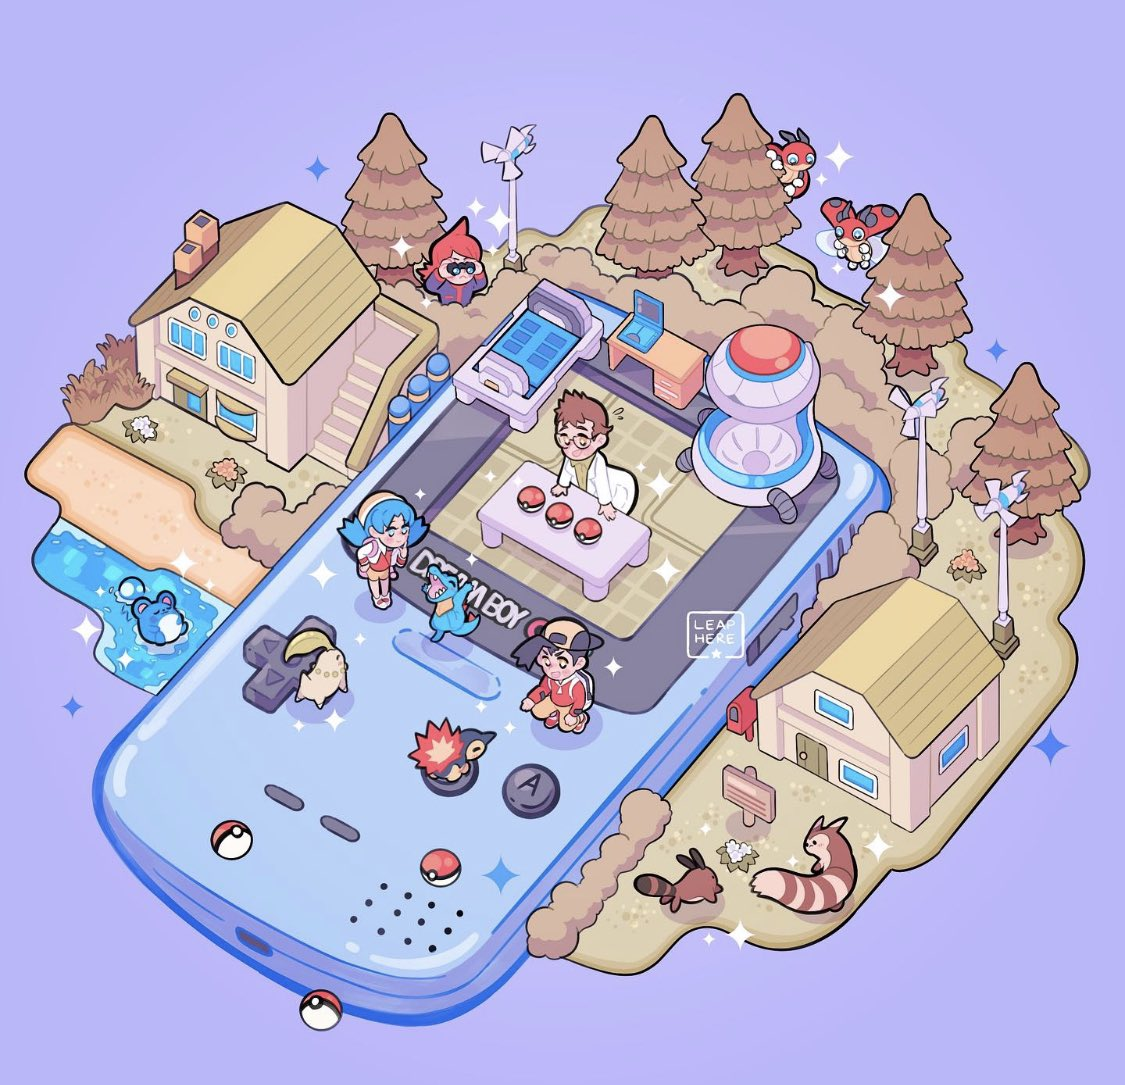 1girl 3boys backpack backwards_hat bag baseball_cap black_hair blue_eyes blue_hair blush building chikorita commentary cyndaquil desk door elm_(pokemon) ethan_(pokemon) furret game_boy_color gen_2_pokemon grass handheld_game_console hat kris_(pokemon) labcoat ledyba marill multiple_boys open_mouth poke_ball poke_ball_(basic) pokemon pokemon_(creature) pokemon_(game) pokemon_gsc sentret shoes silver_(pokemon) smile sneakers sparkle squatting standing starter_pokemon_trio table totodile tree window yamato-leaphere